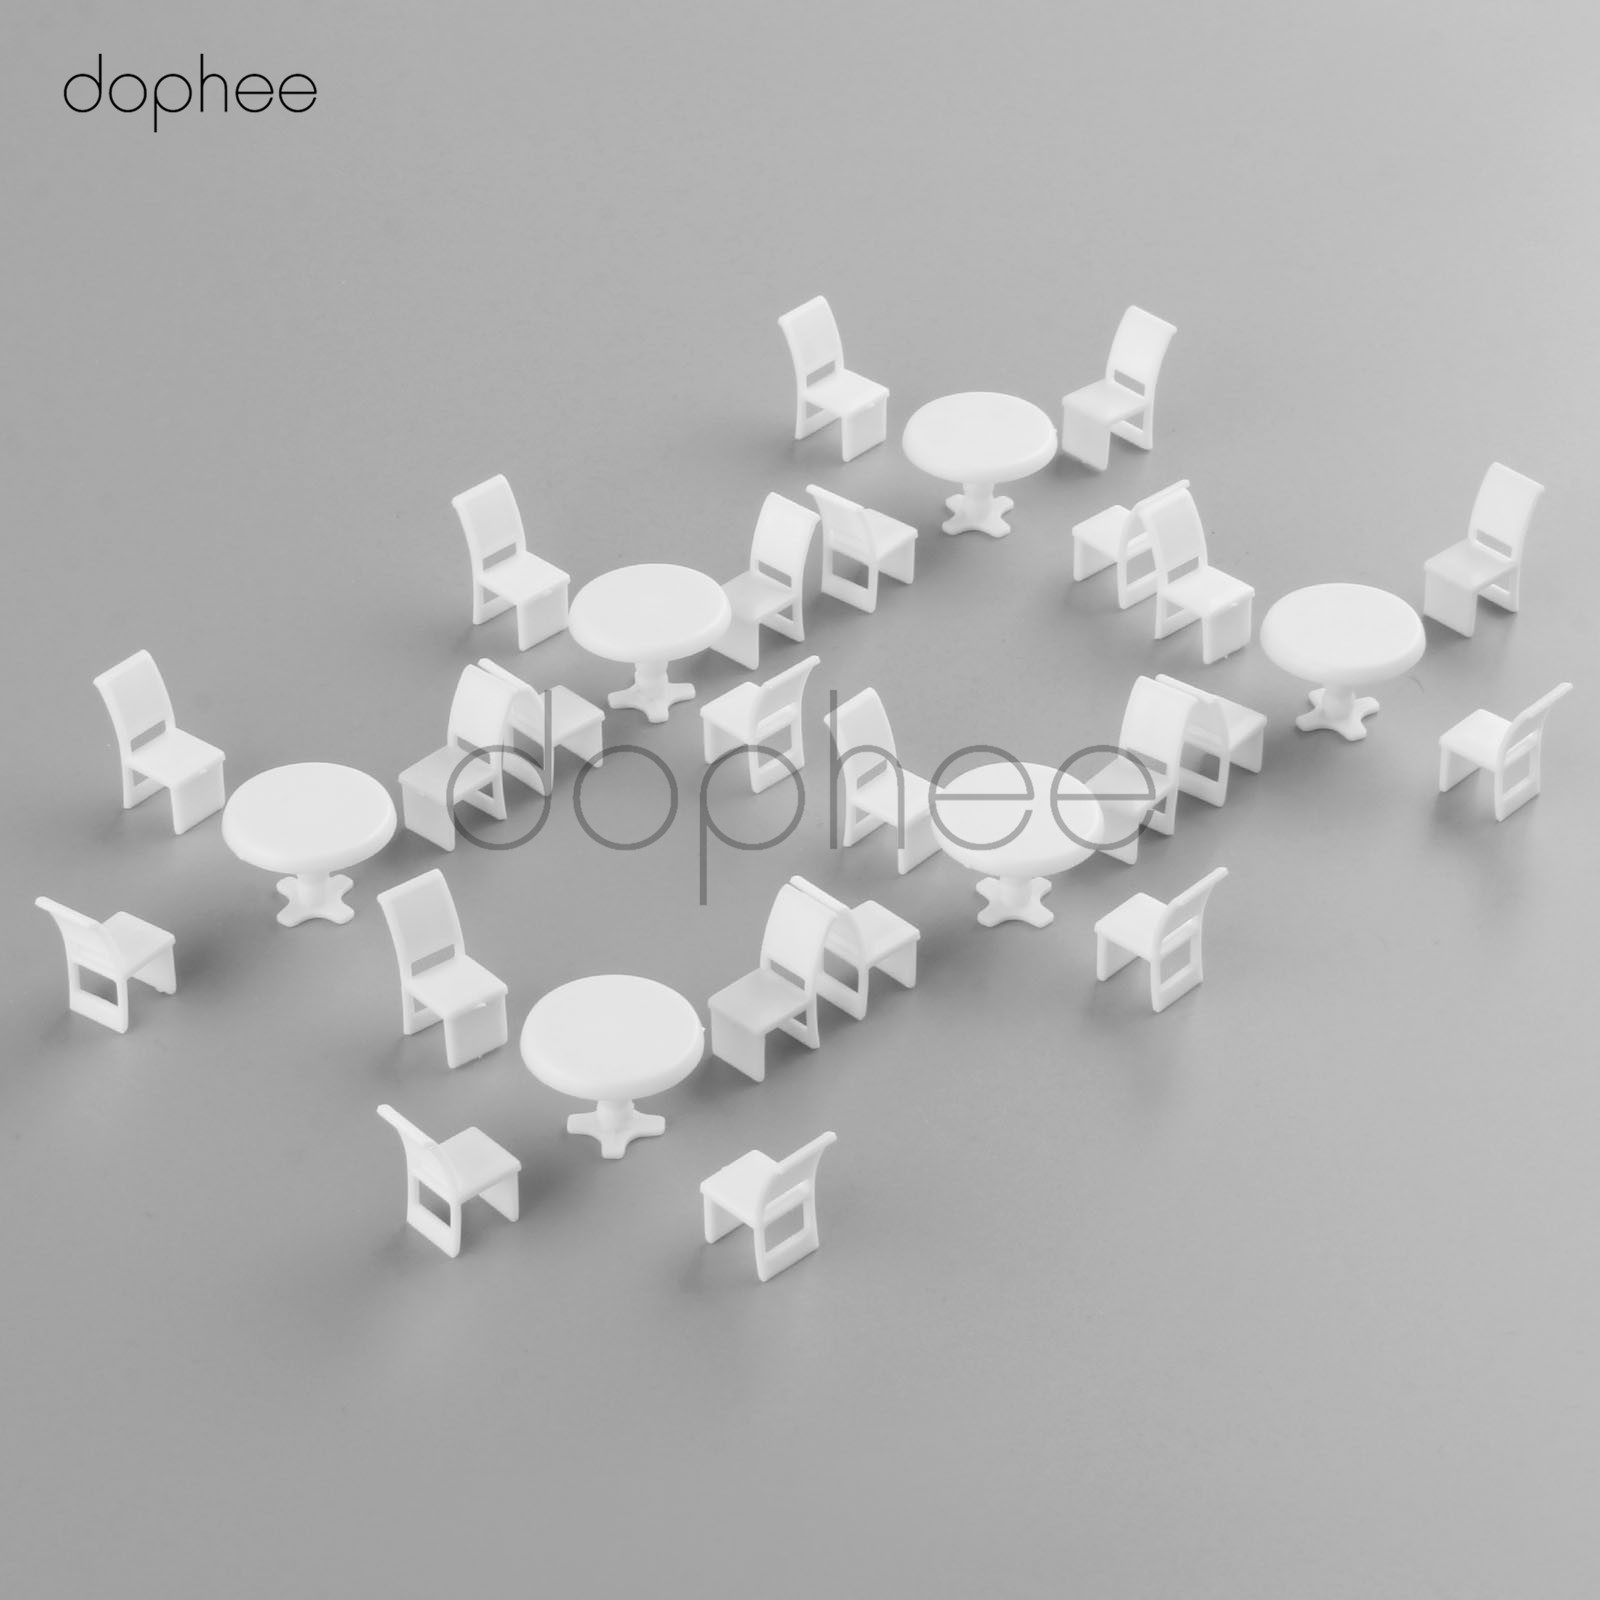 dophee 10 sets White Round Dining Table Chair Settee Railway Model 1:50 model building kit railway modeling